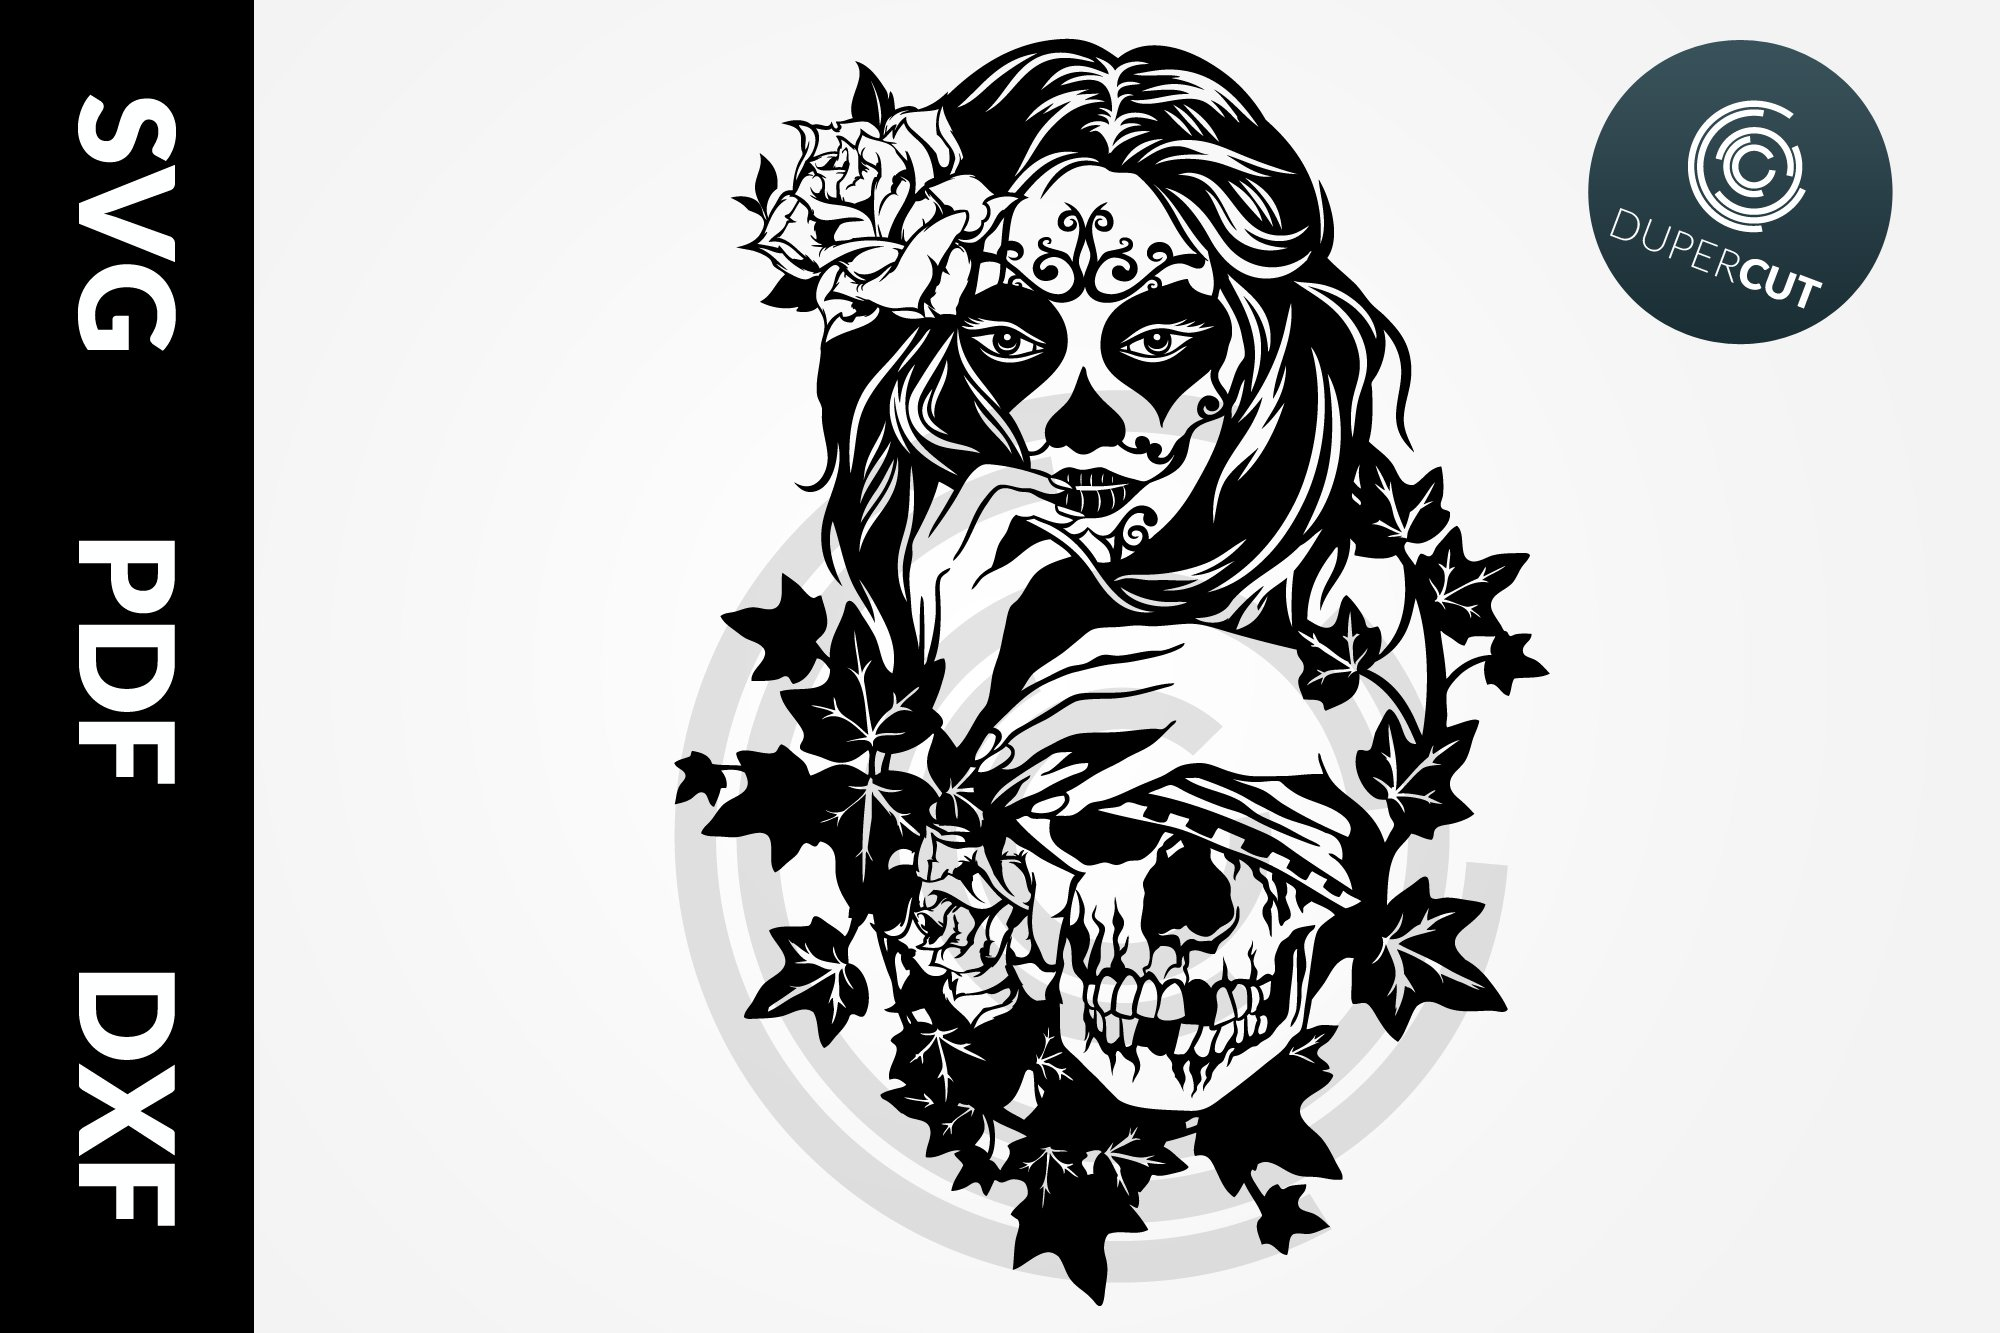 Svg Pdf Dxf Female Sugar Skull Papercutting Template 514973 Paper Cutting Design Bundles Paper sewing patterns are slowly becoming redundant, mainly due to the cost of commercial printing, packaging, and delivery worldwide. svg pdf dxf female sugar skull papercutting template